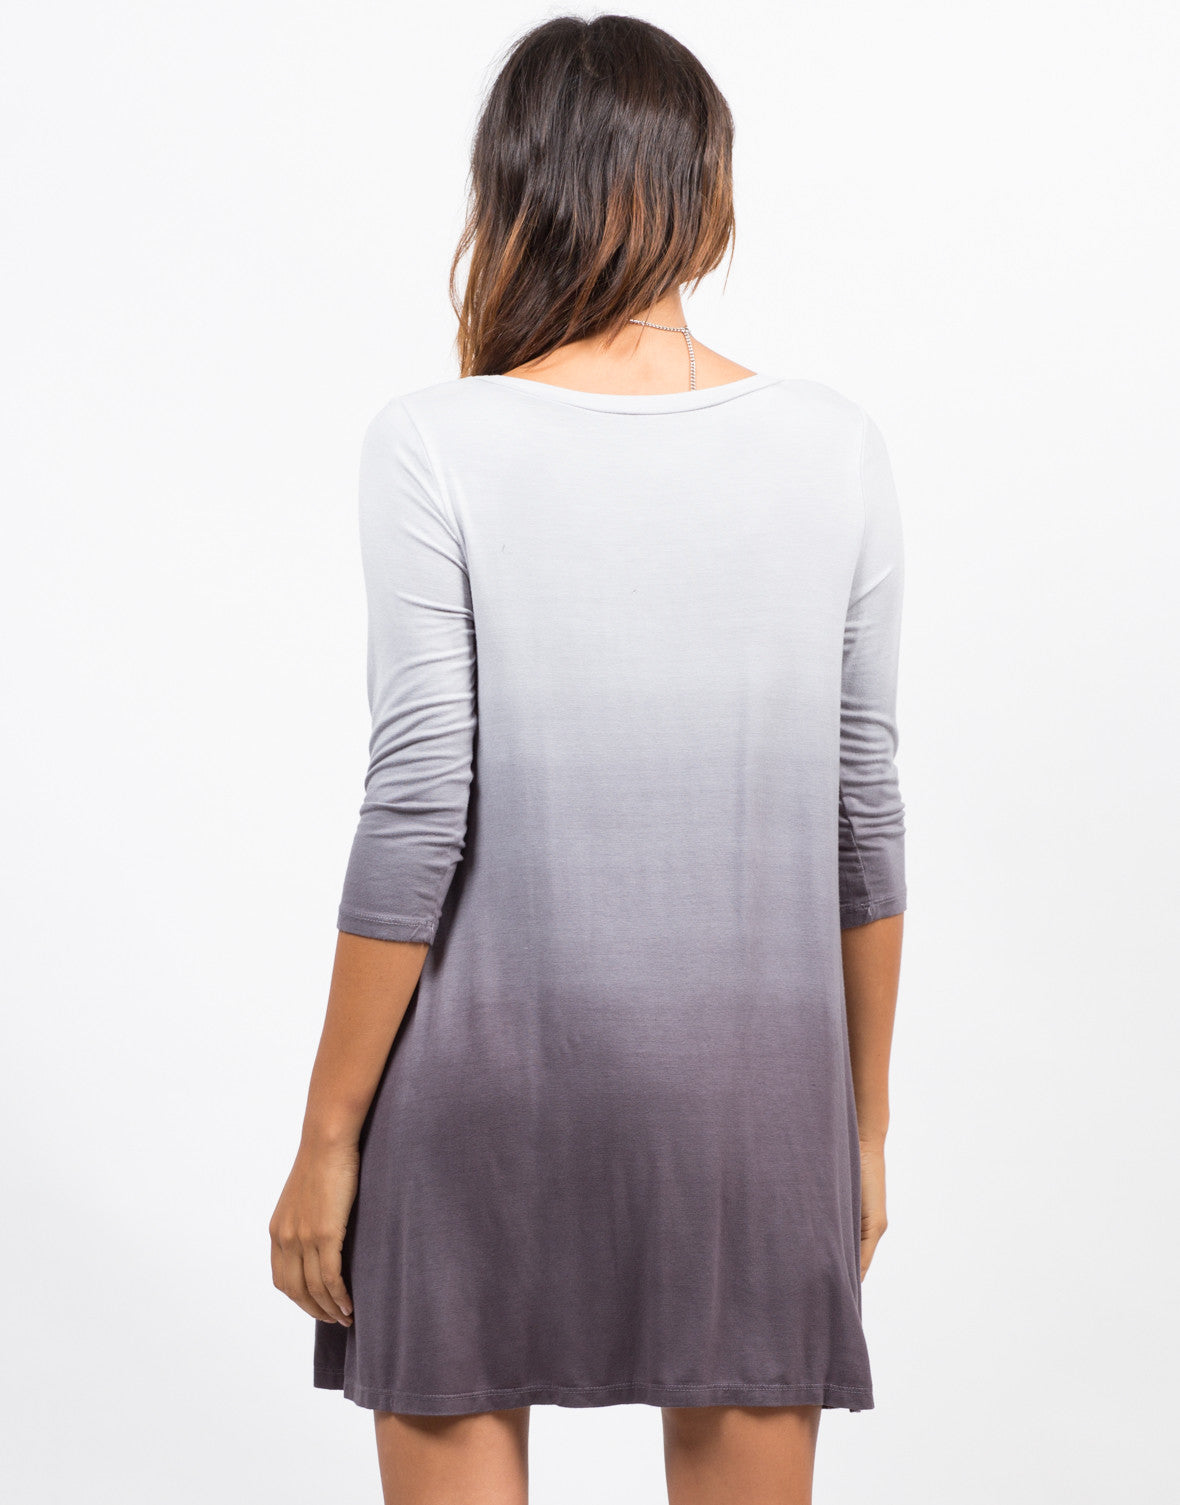 Back View of Ombre Jersey Dress